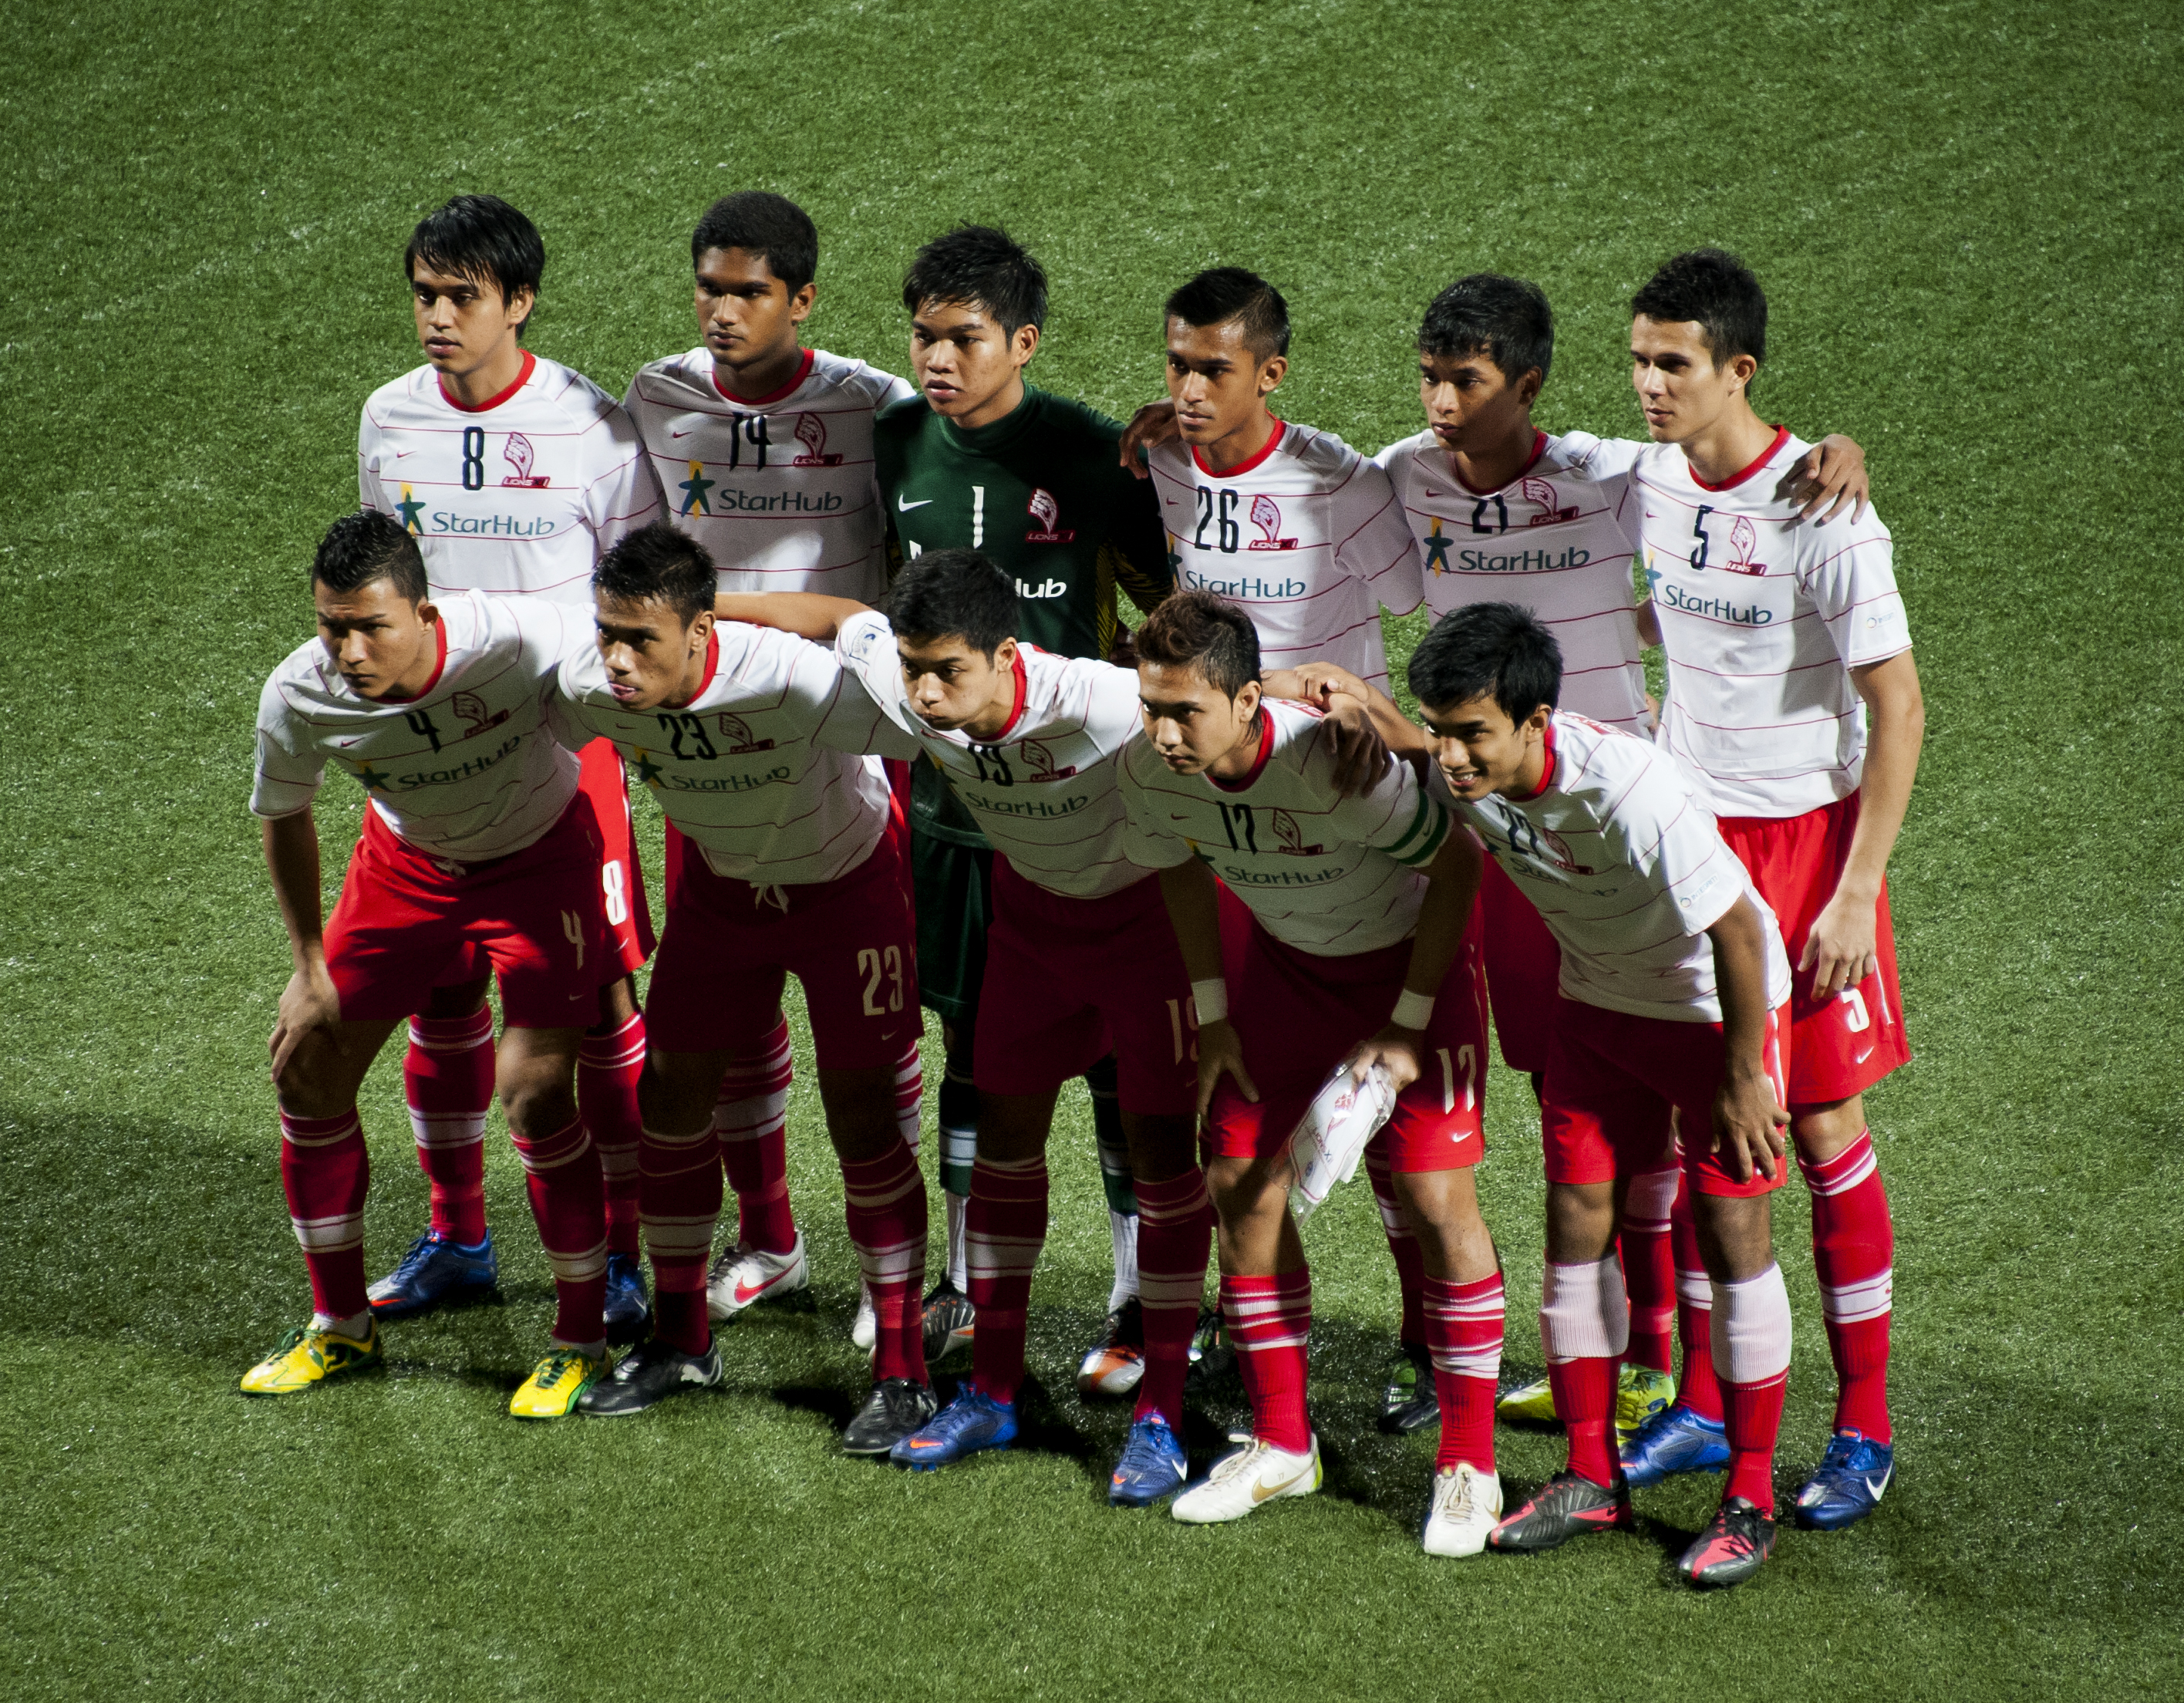 LIONSXII - Simple English Wikipedia, the free encyclopedia